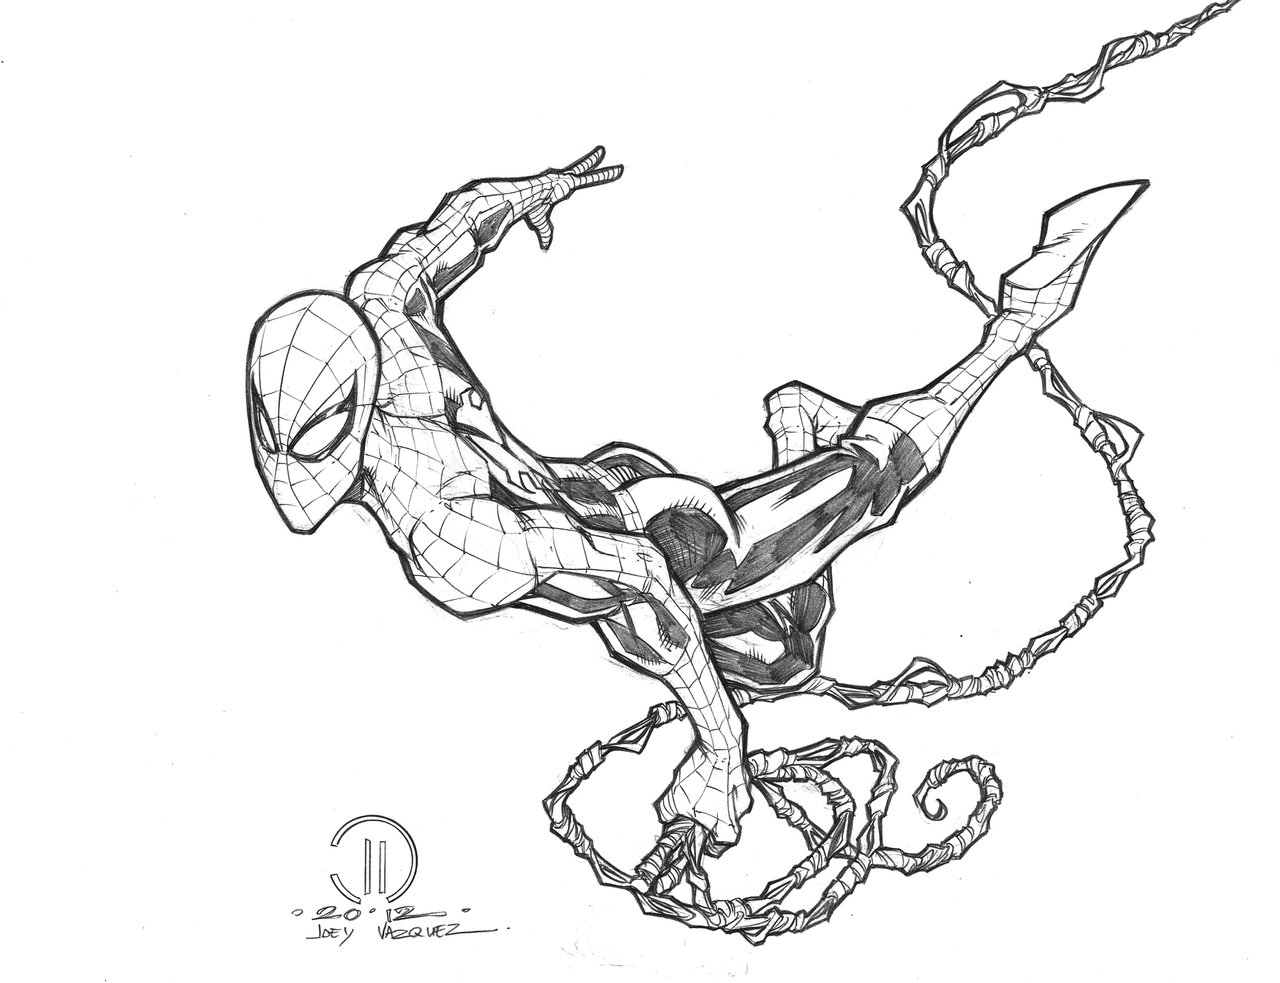 1280x983 Spiderman Sketch Drawing Spiderman Realistic Art, Pencil Drawing